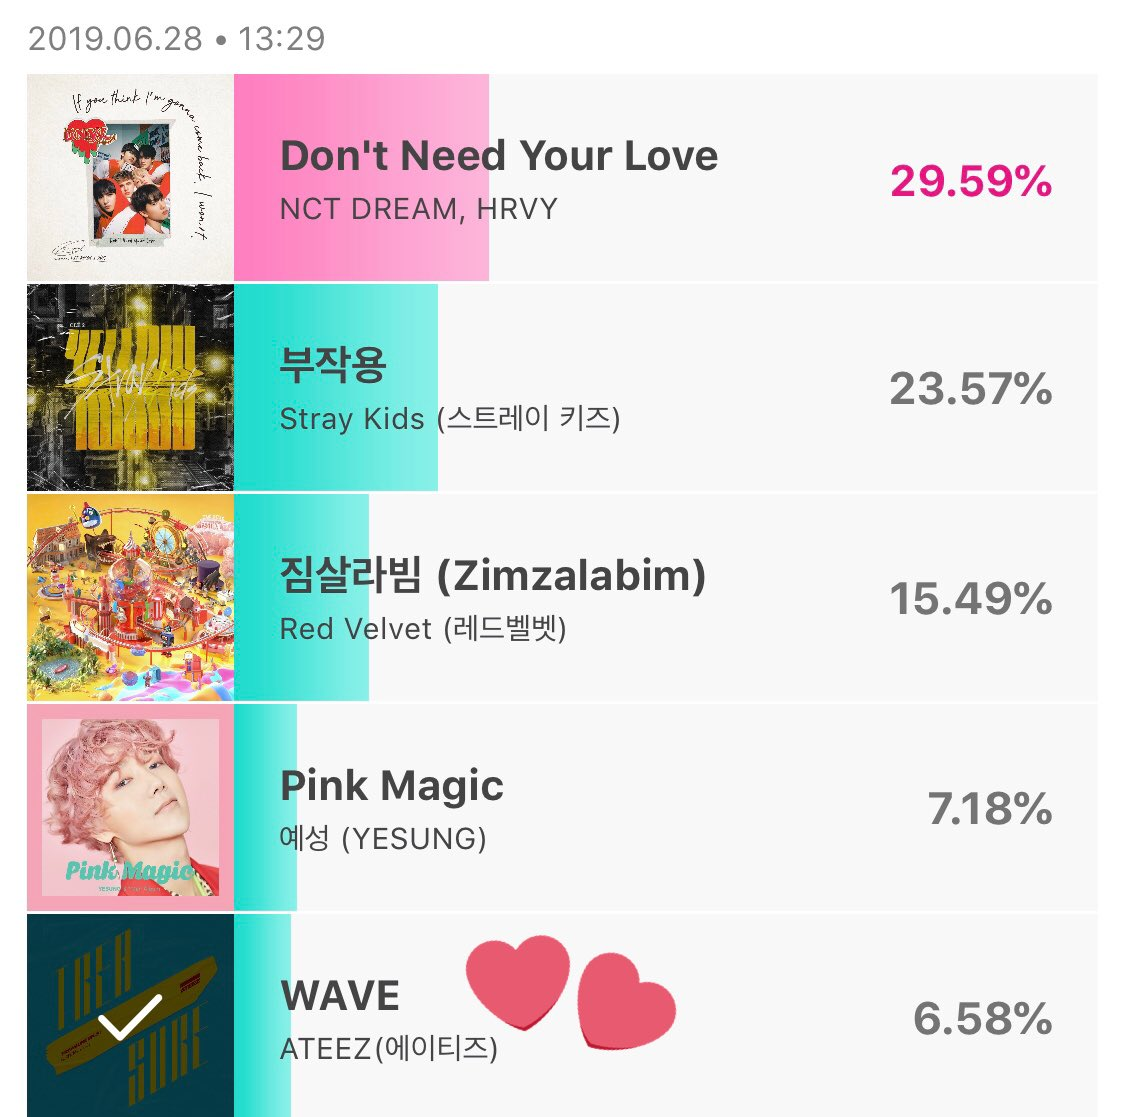 [ IDOL CHAMP VOTING ]  ATINY  Vote for ATEEZ on Idol Champ '1st week of july' to give ATEEZ a 3rd win!  We can easily claim 1st place if we all vote -use Idol Champ App to vote!  #ATEEZ #ATEEZWin #ATEEZ_OneToAll #ATEEZVote @ATEEZofficialpic.twitter.com/SYbTouswfP  by ATEEZ Updates